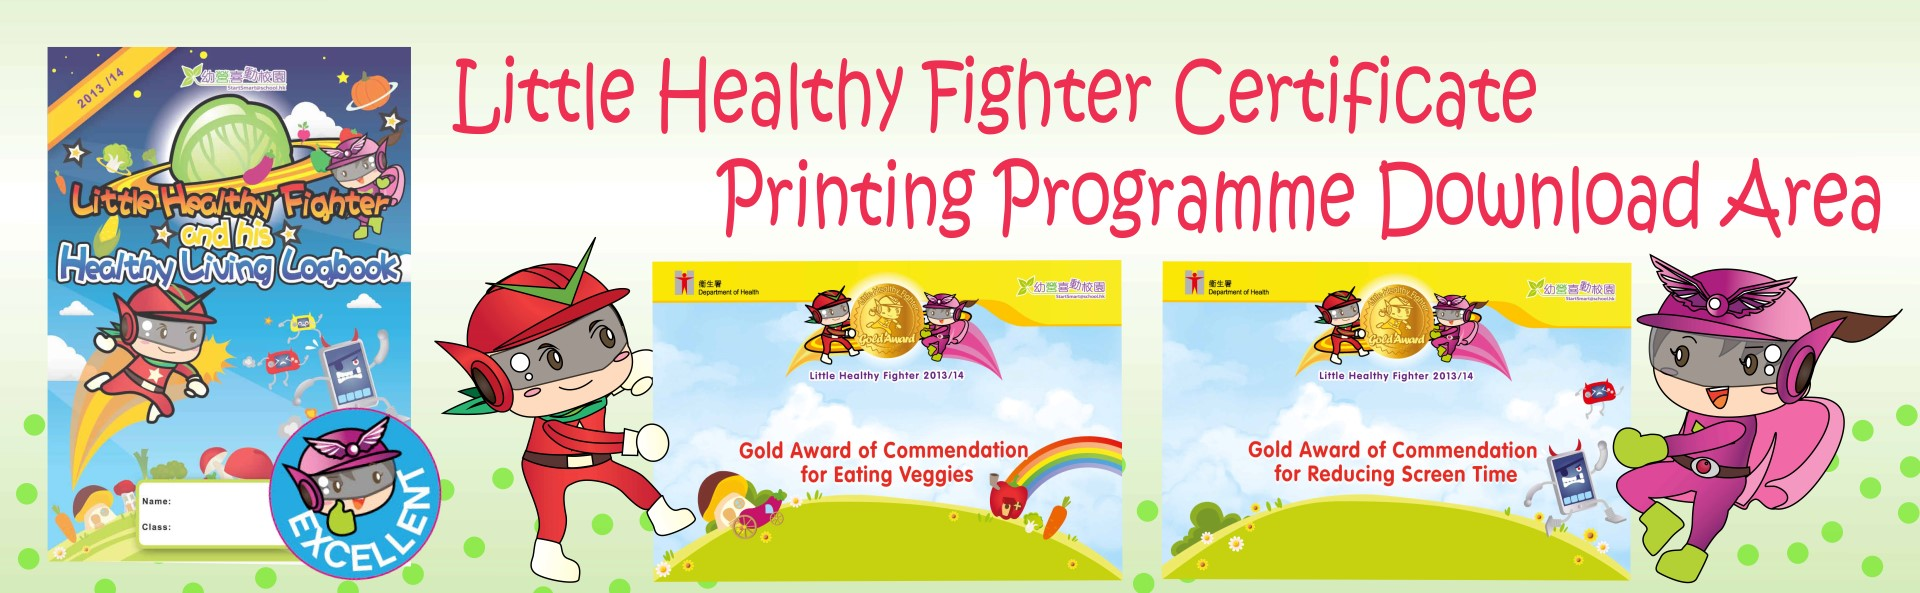 Little Healthy Fighter Certificate Printing Programme Download Area